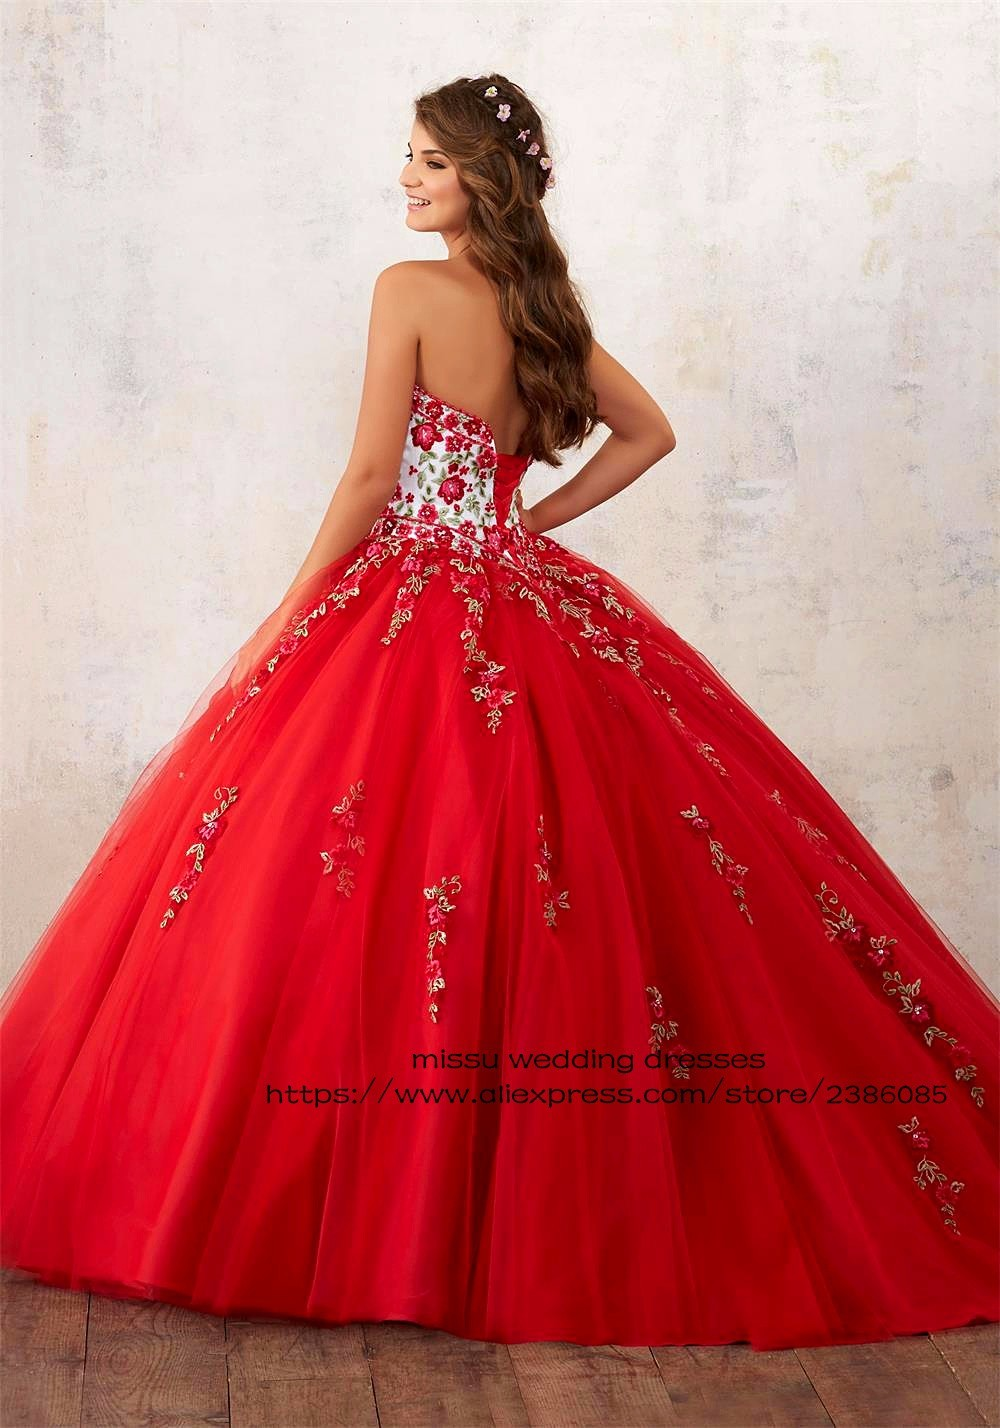 9184e05a68 Elegant 2018 Pink Red Quinceanera Dress Embroidery Ball Gown Tulle Vestidos  De 15 Anos Girls Sweet 16 Dresses with Jacket CR212